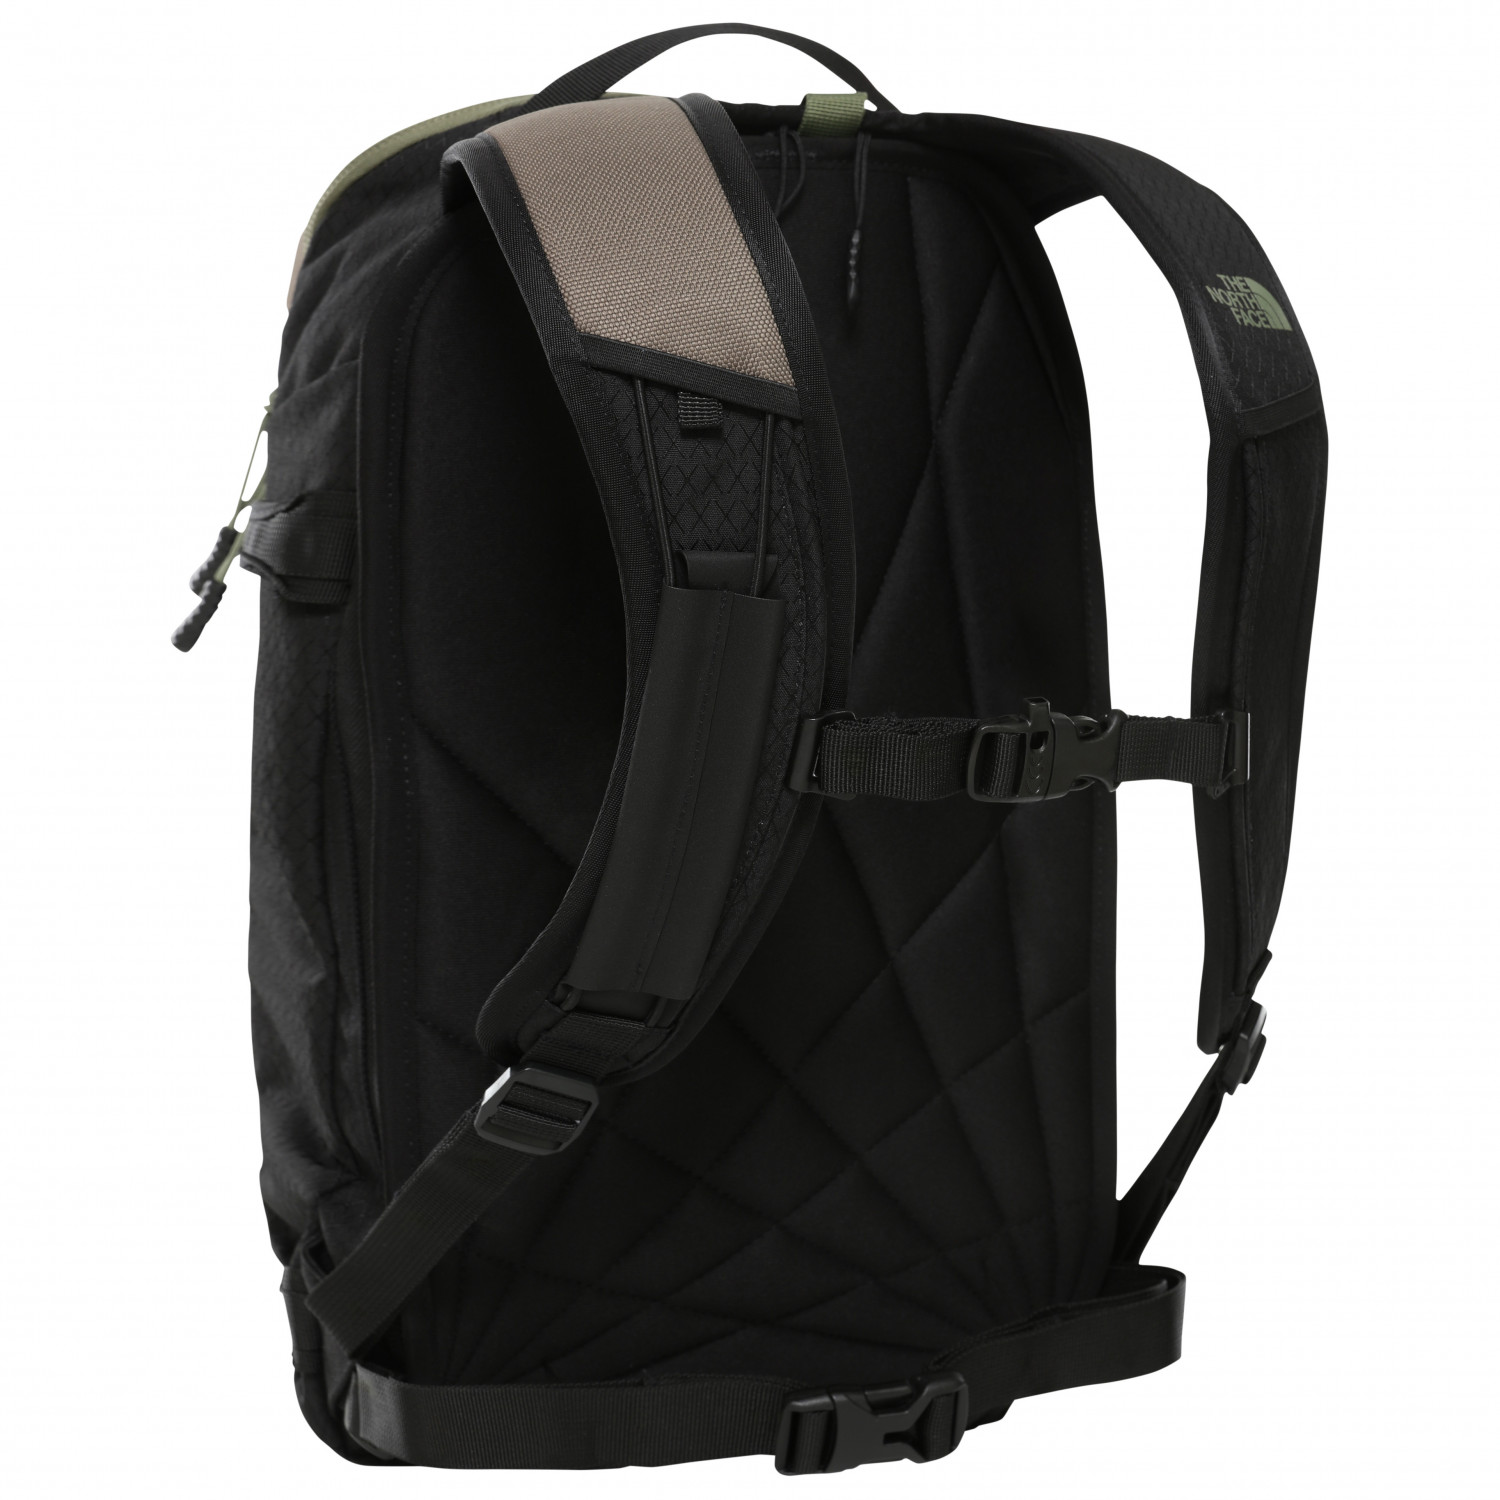 4cedf5a028 The North Face Slackpack 20 Pro - Ski Touring Backpack | Buy online ...